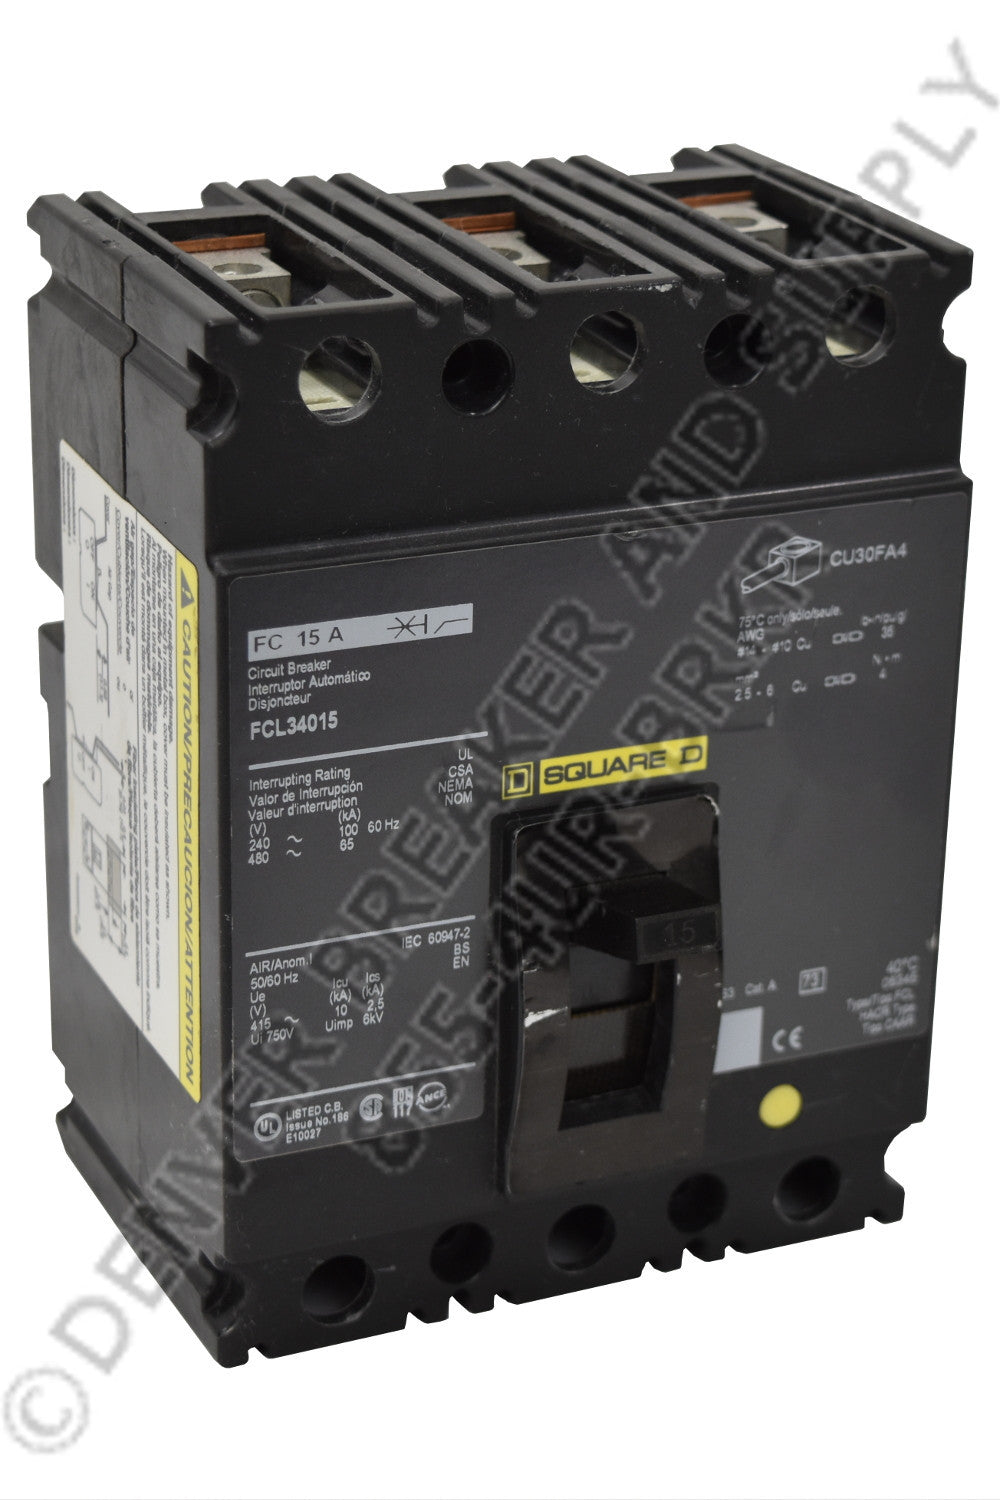 Square D FCP34020 Circuit Breakers